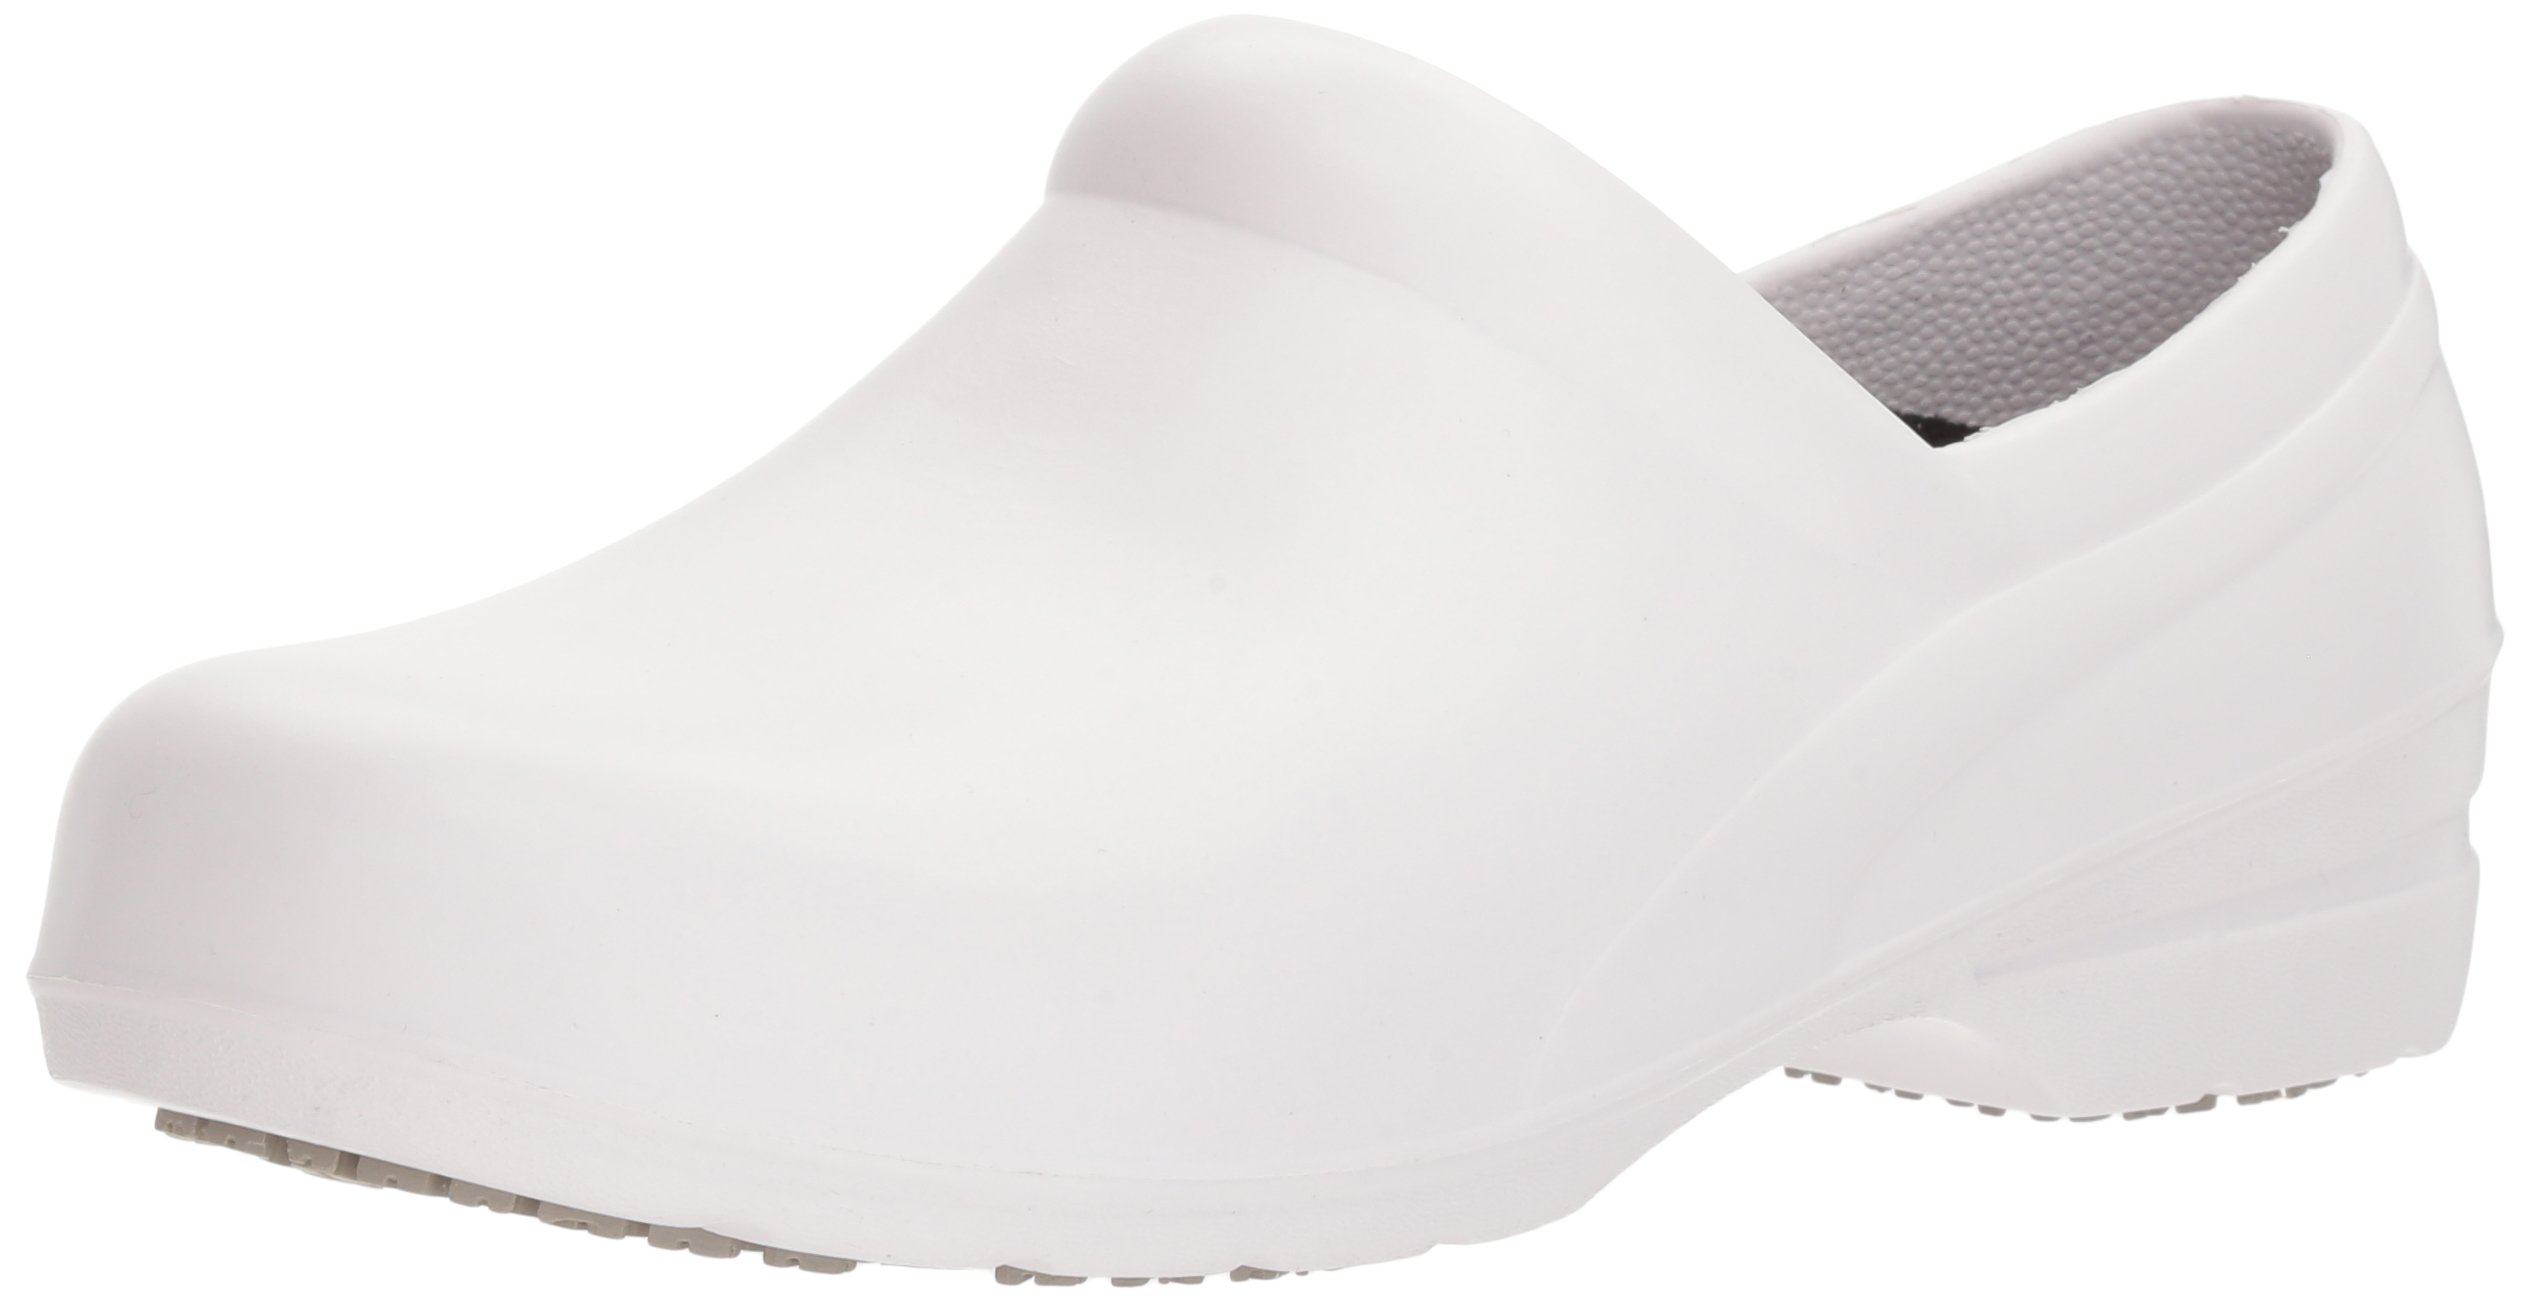 Easy Works Women's Kris Health Care Professional Shoe, White, 7 M US by Easy Works (Image #1)